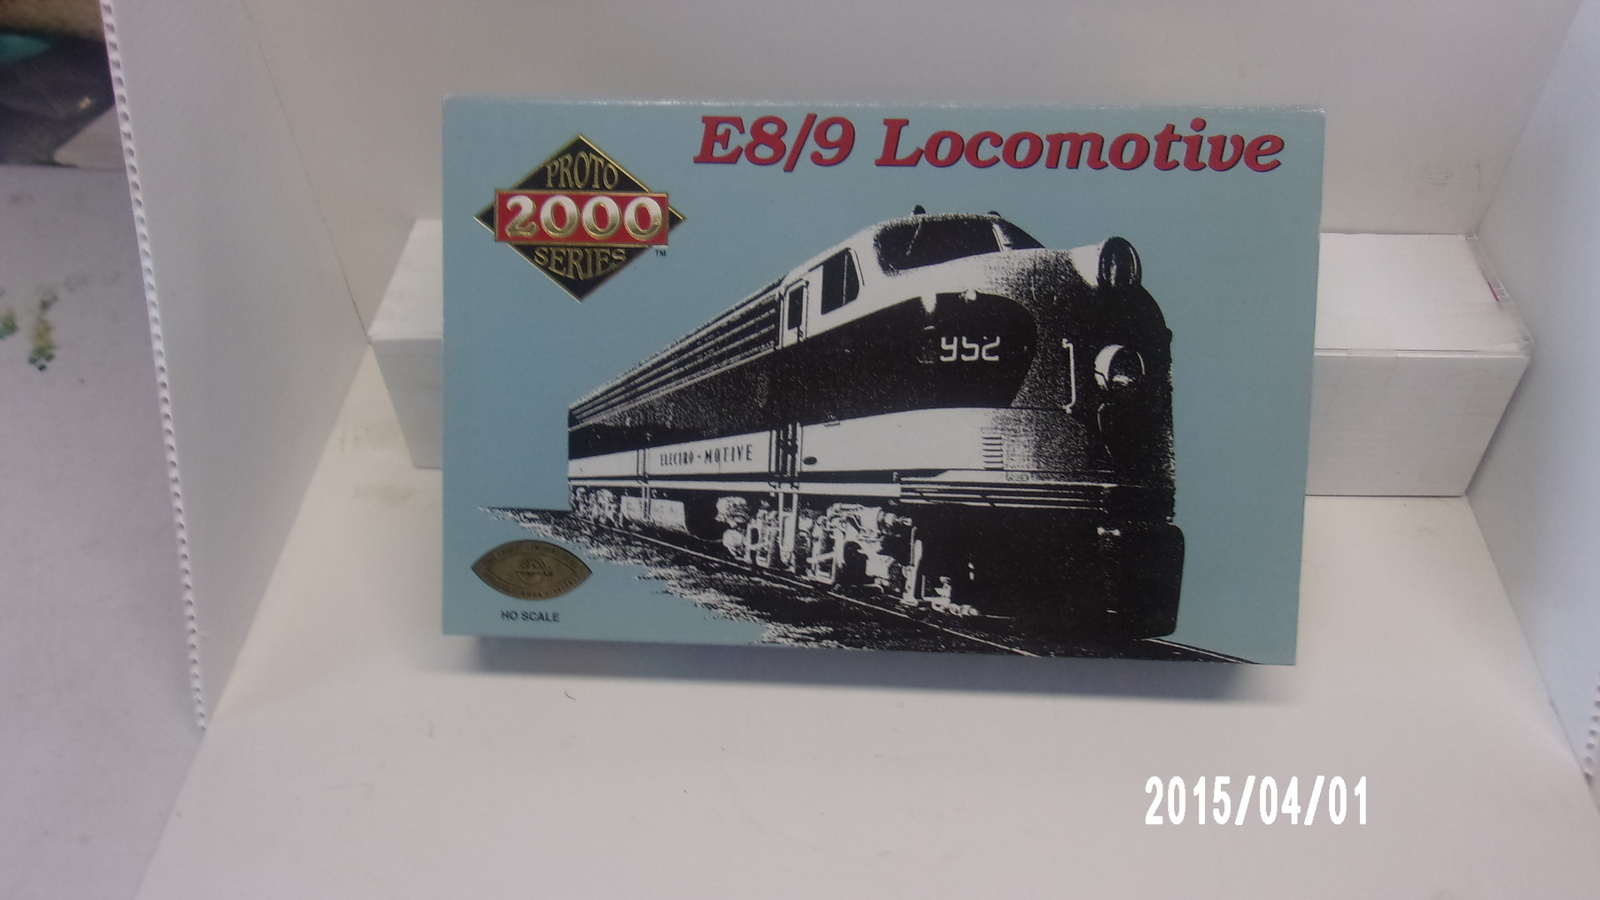 Primary image for E8/9 Locomotive PROTO 2000 Series